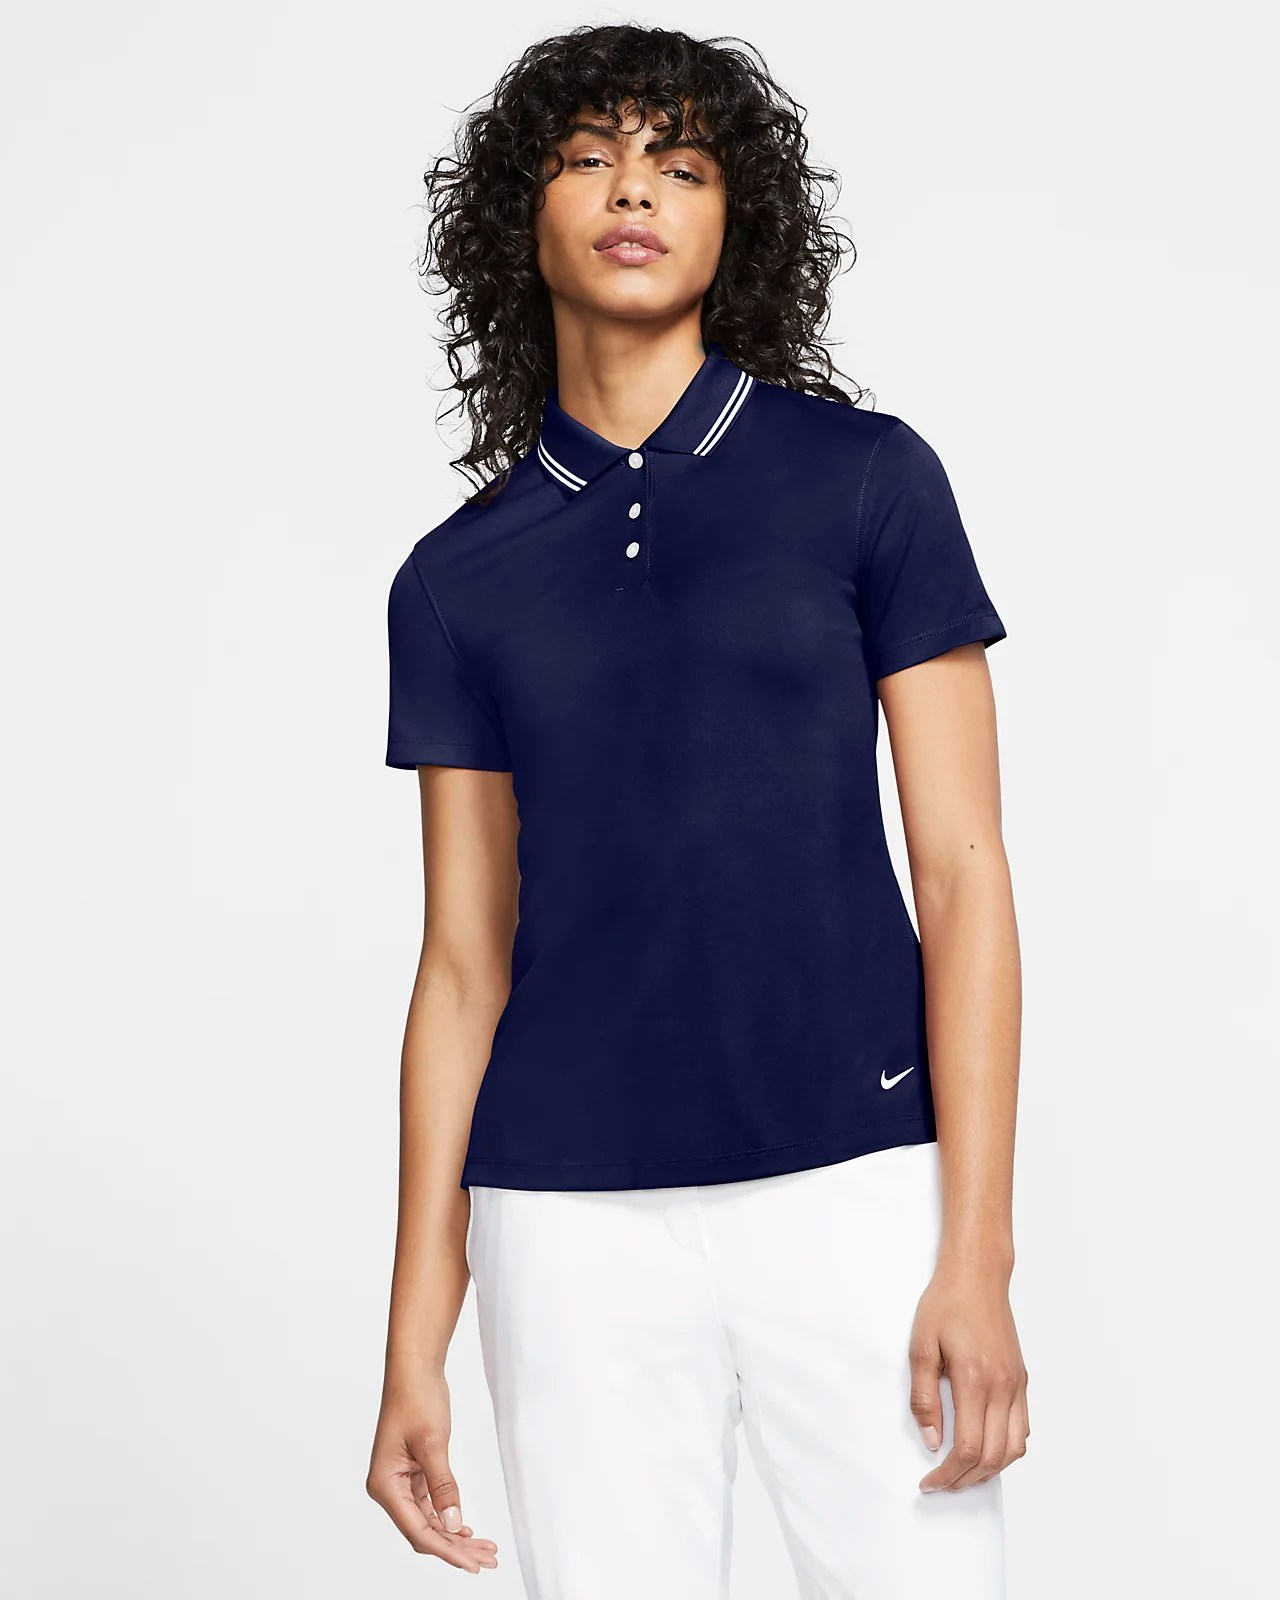 Top Things to Look for in Nike Womens Golf Apparel